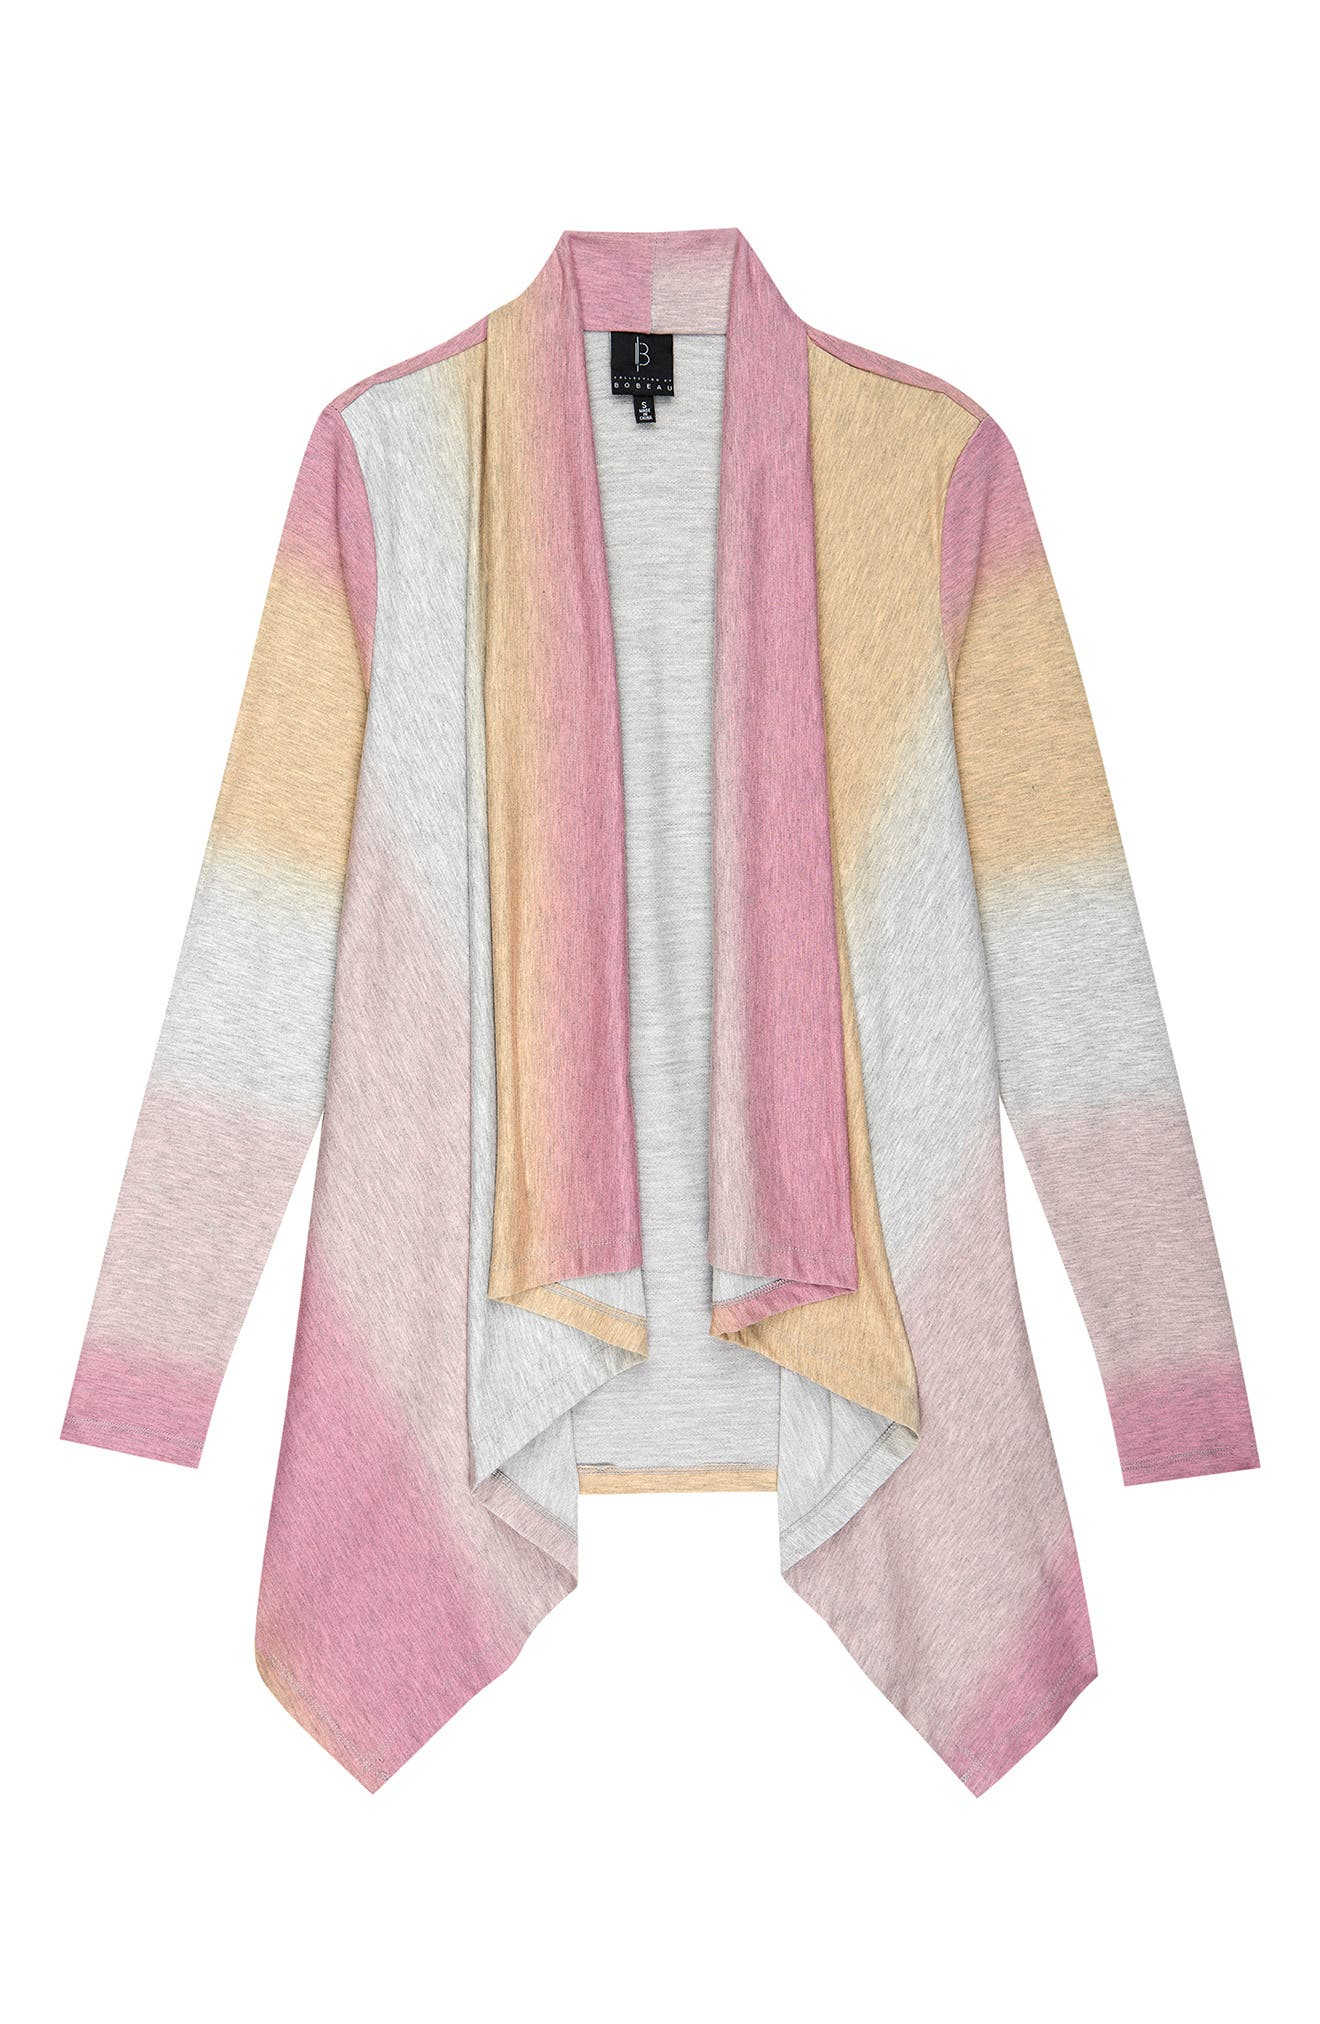 Shifting from creamy orange to blushing pink, this drape-front cardigan in comfy French-terry is a joy to toss on for a cloudy day out. Style Name: Bobeau Amie Ombre Open Front Cardigan. Style Number: 6092573. Available in stores.